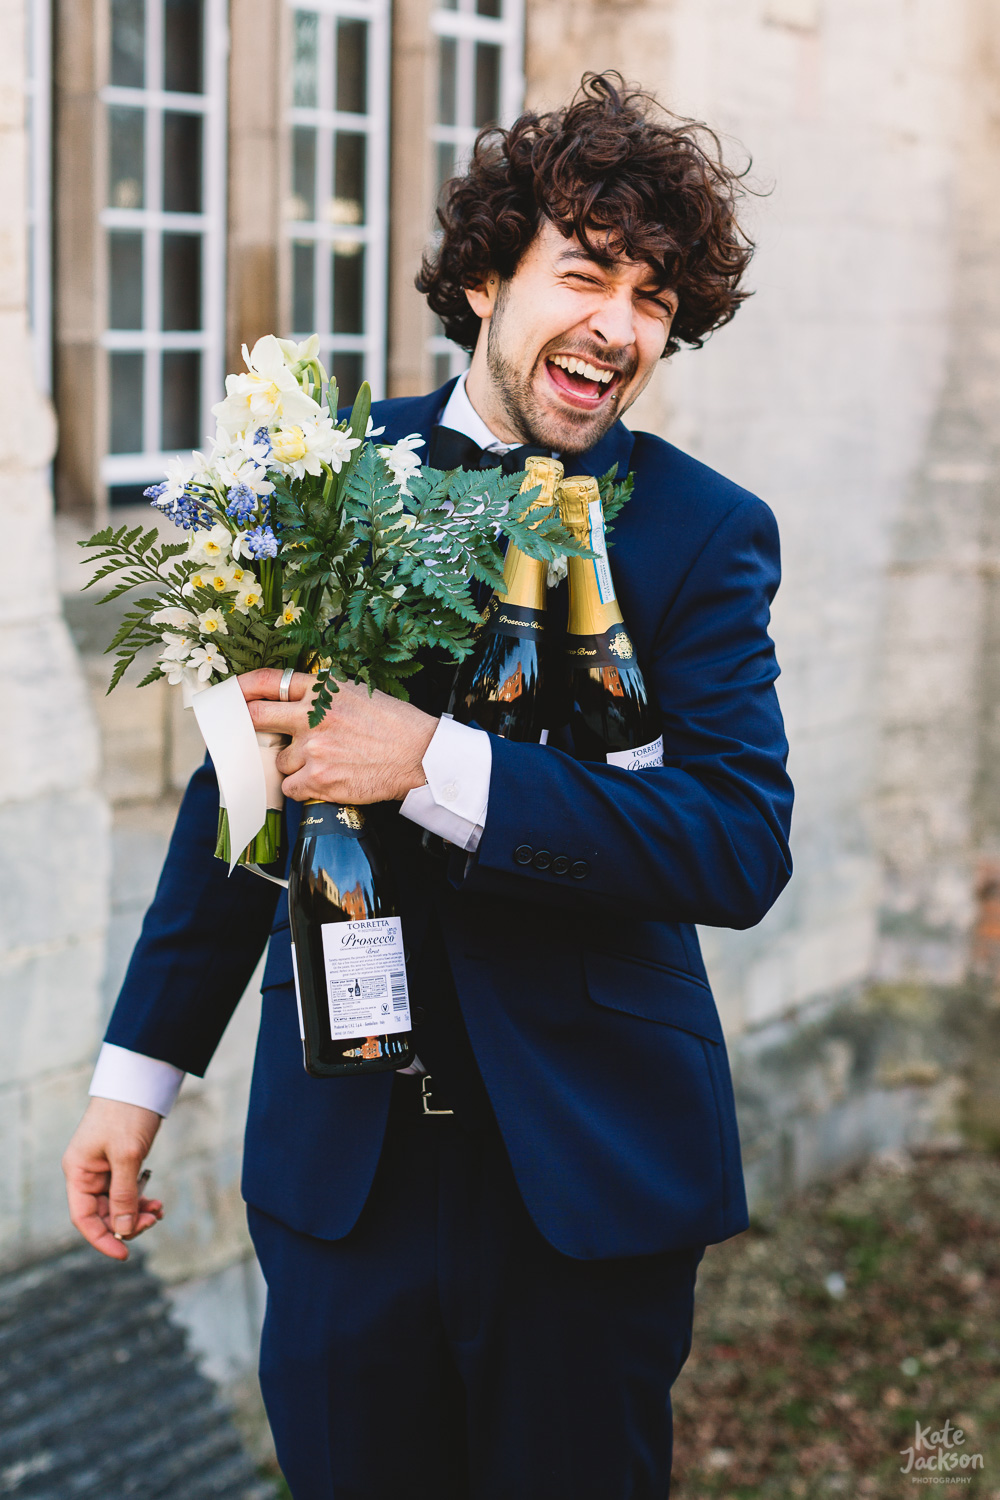 Brides best man holding bouquet and bottles of prosecco laughing at fun wedding at Gloucester Blackfriars Priory